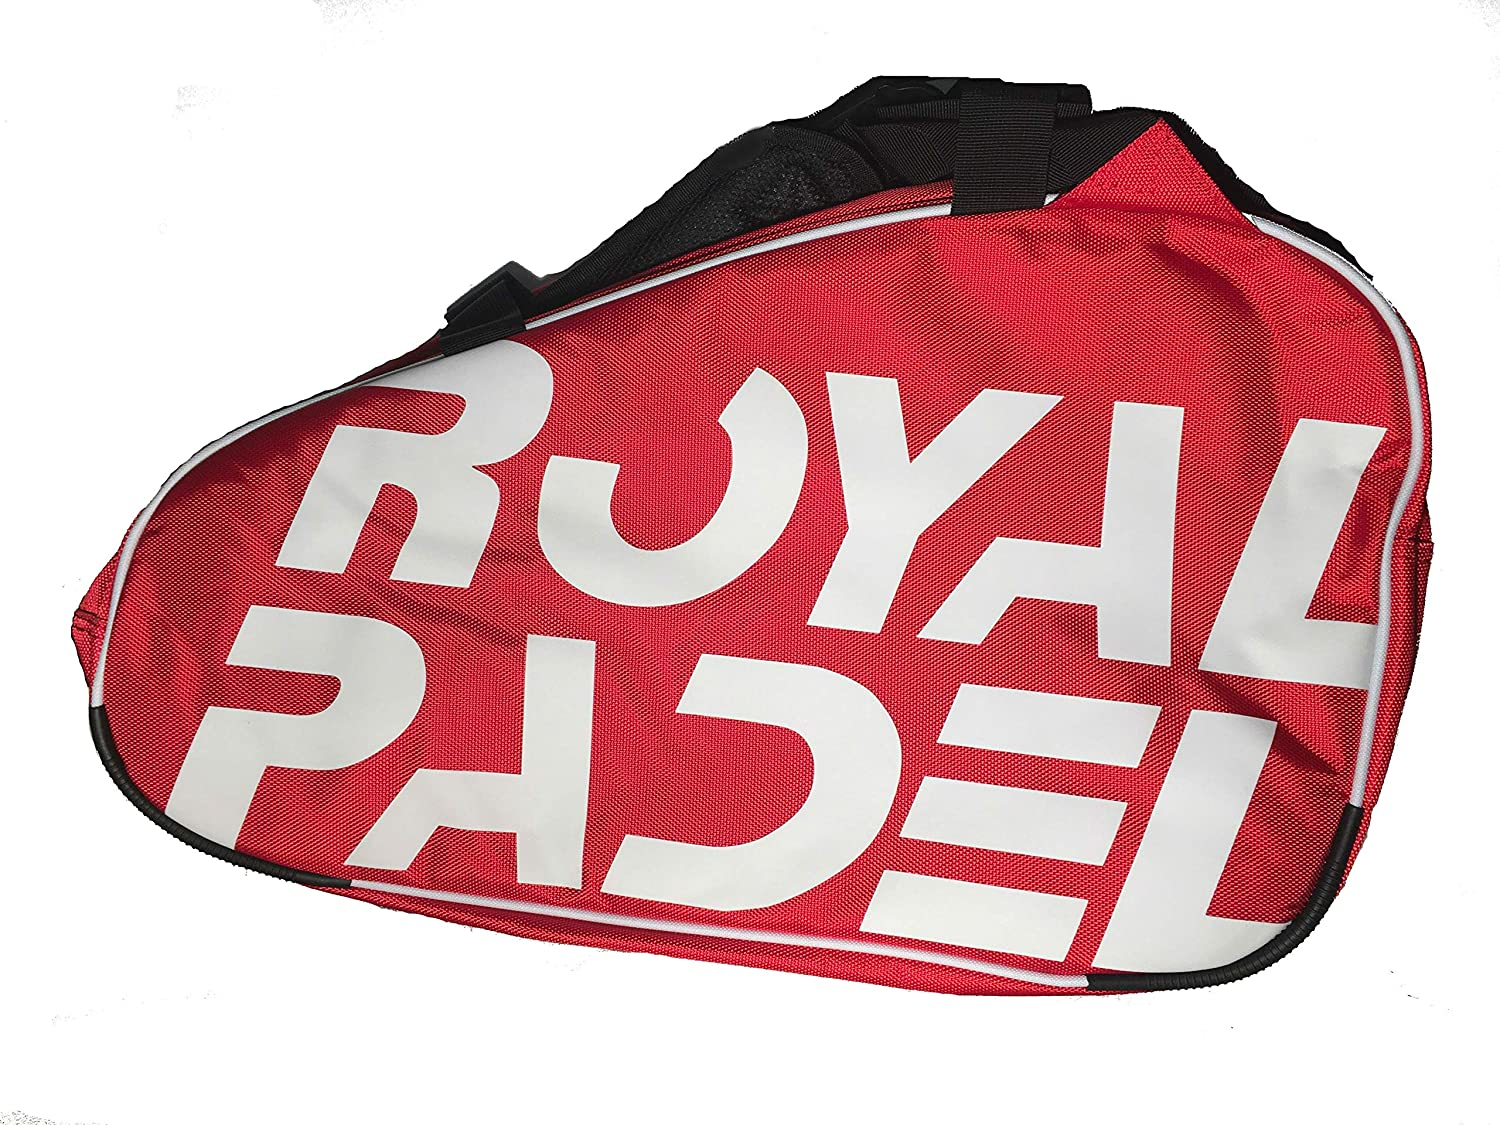 Royal Padel Voltage Paleteros de Pádel, Unisex Adulto: Amazon.es: Deportes y aire libre